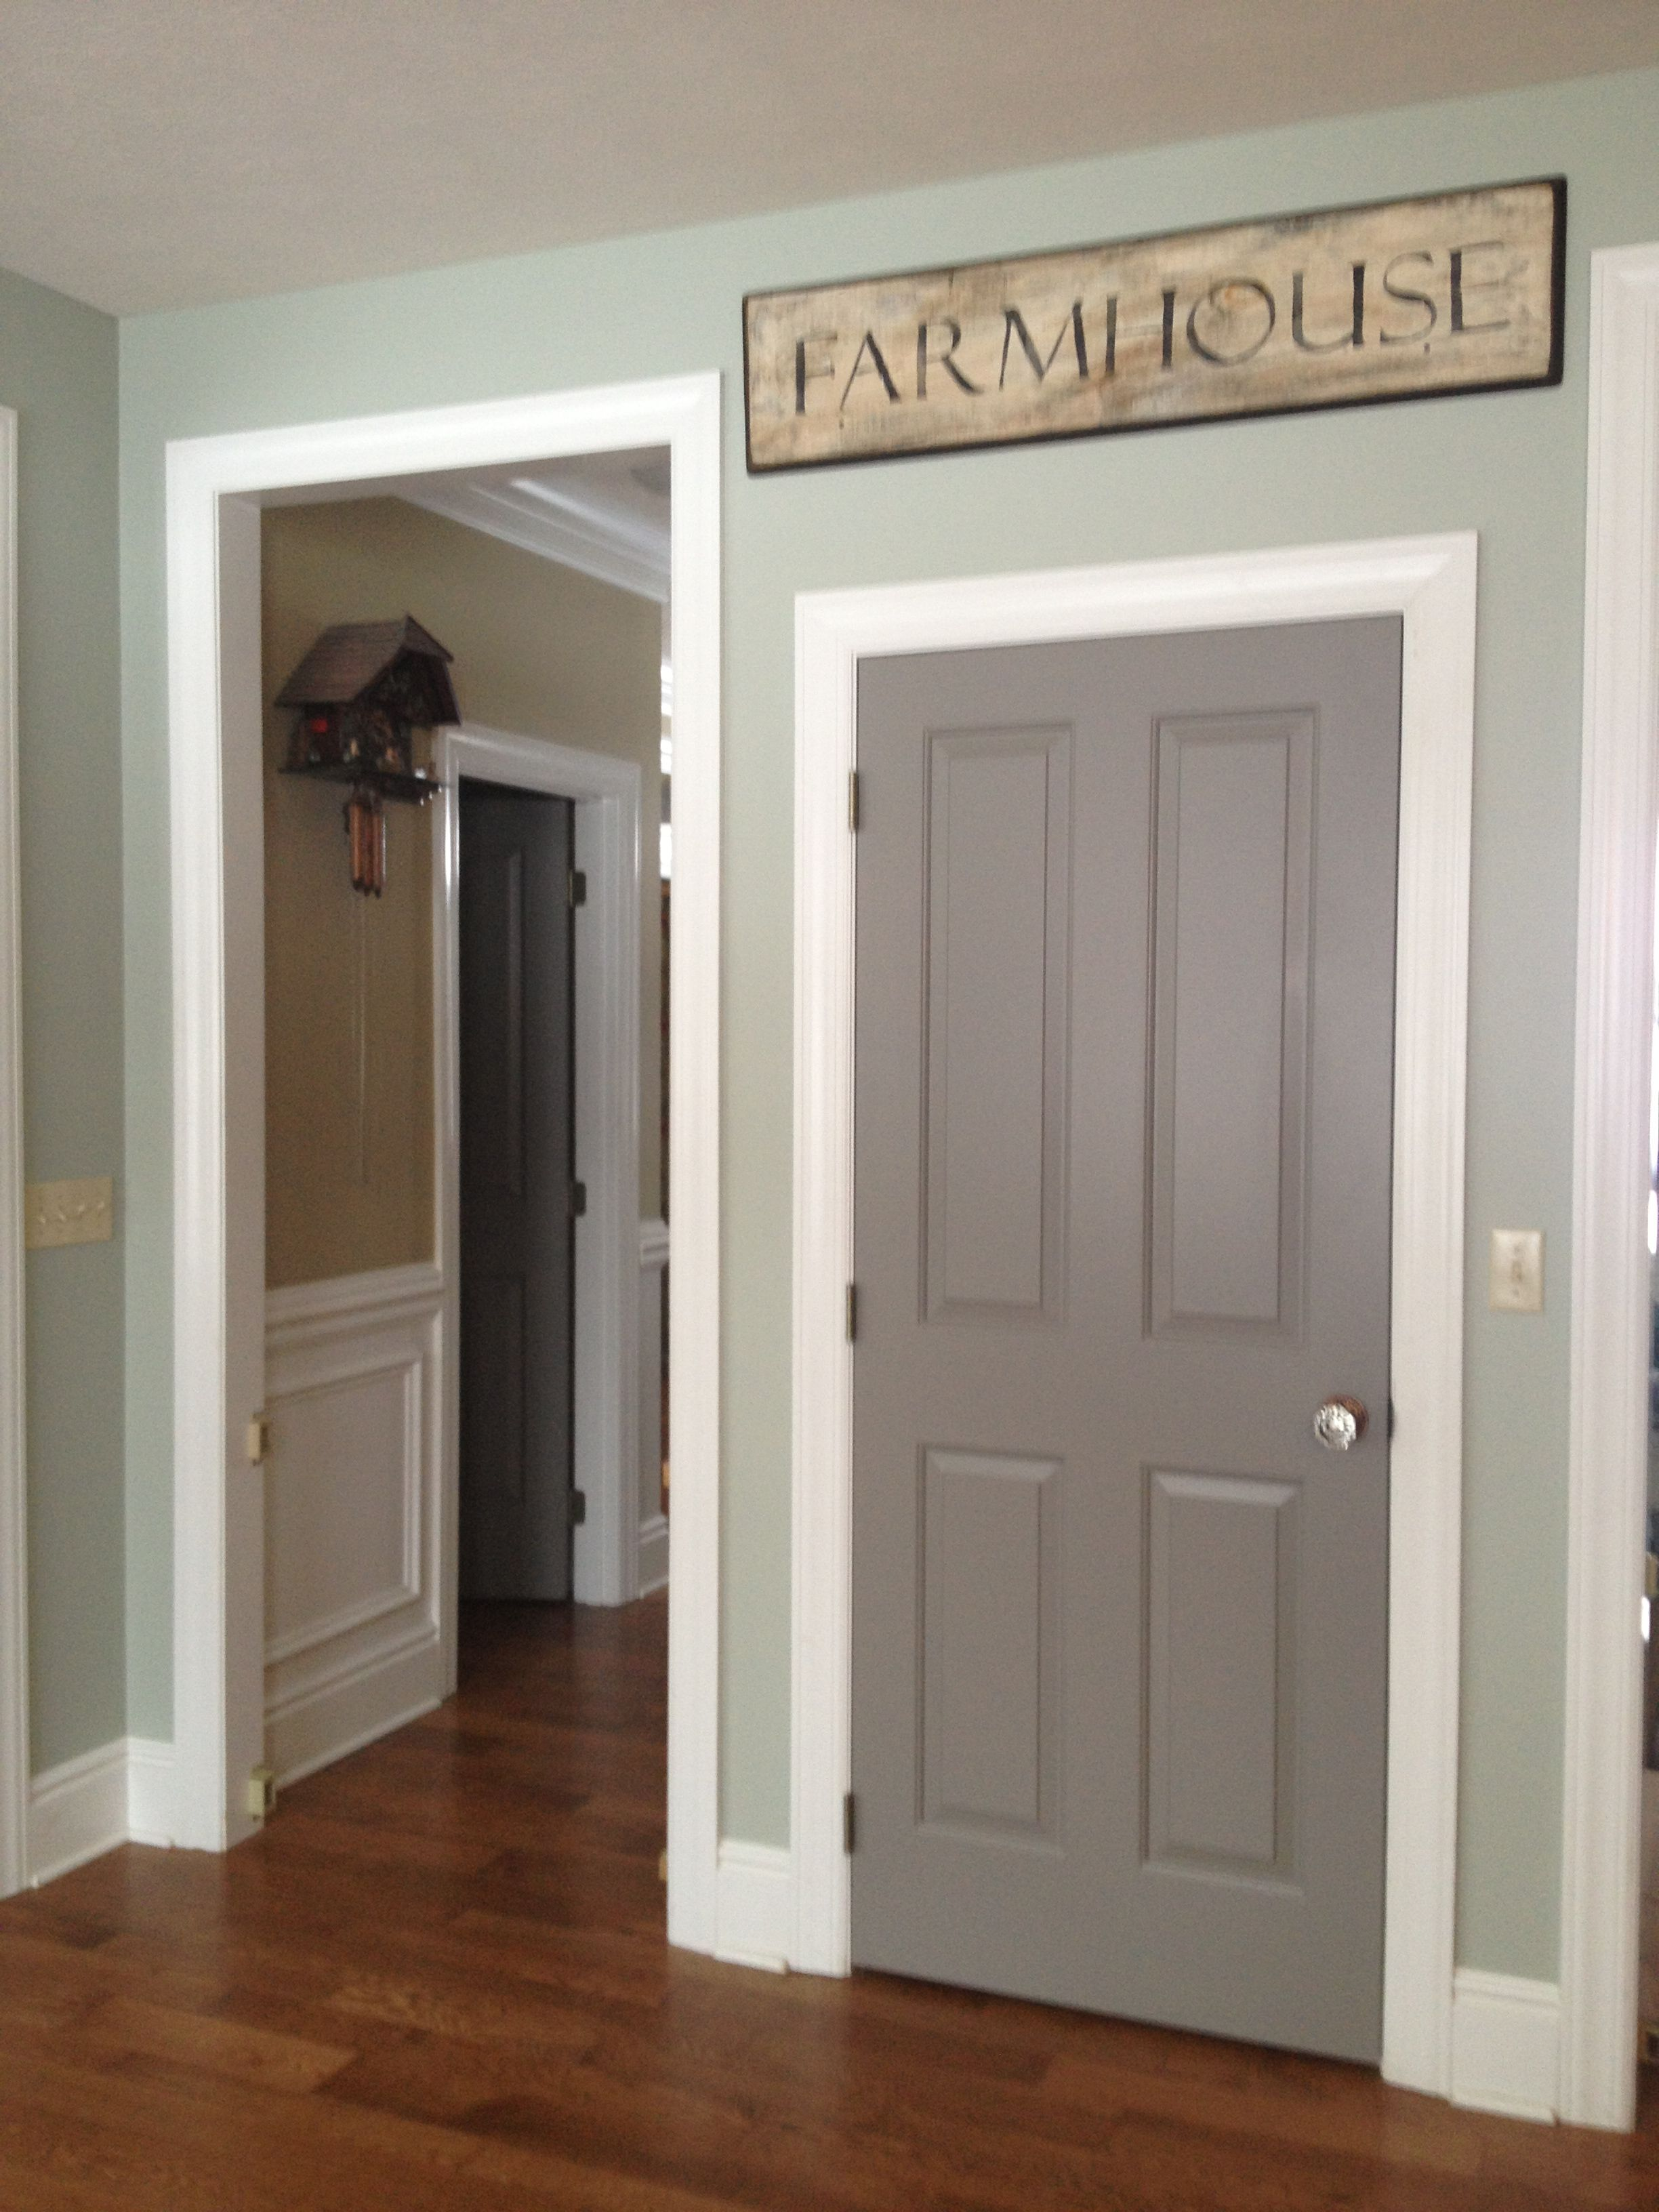 Sherwin williams dovetail grey the door color is what i Front room paint colors